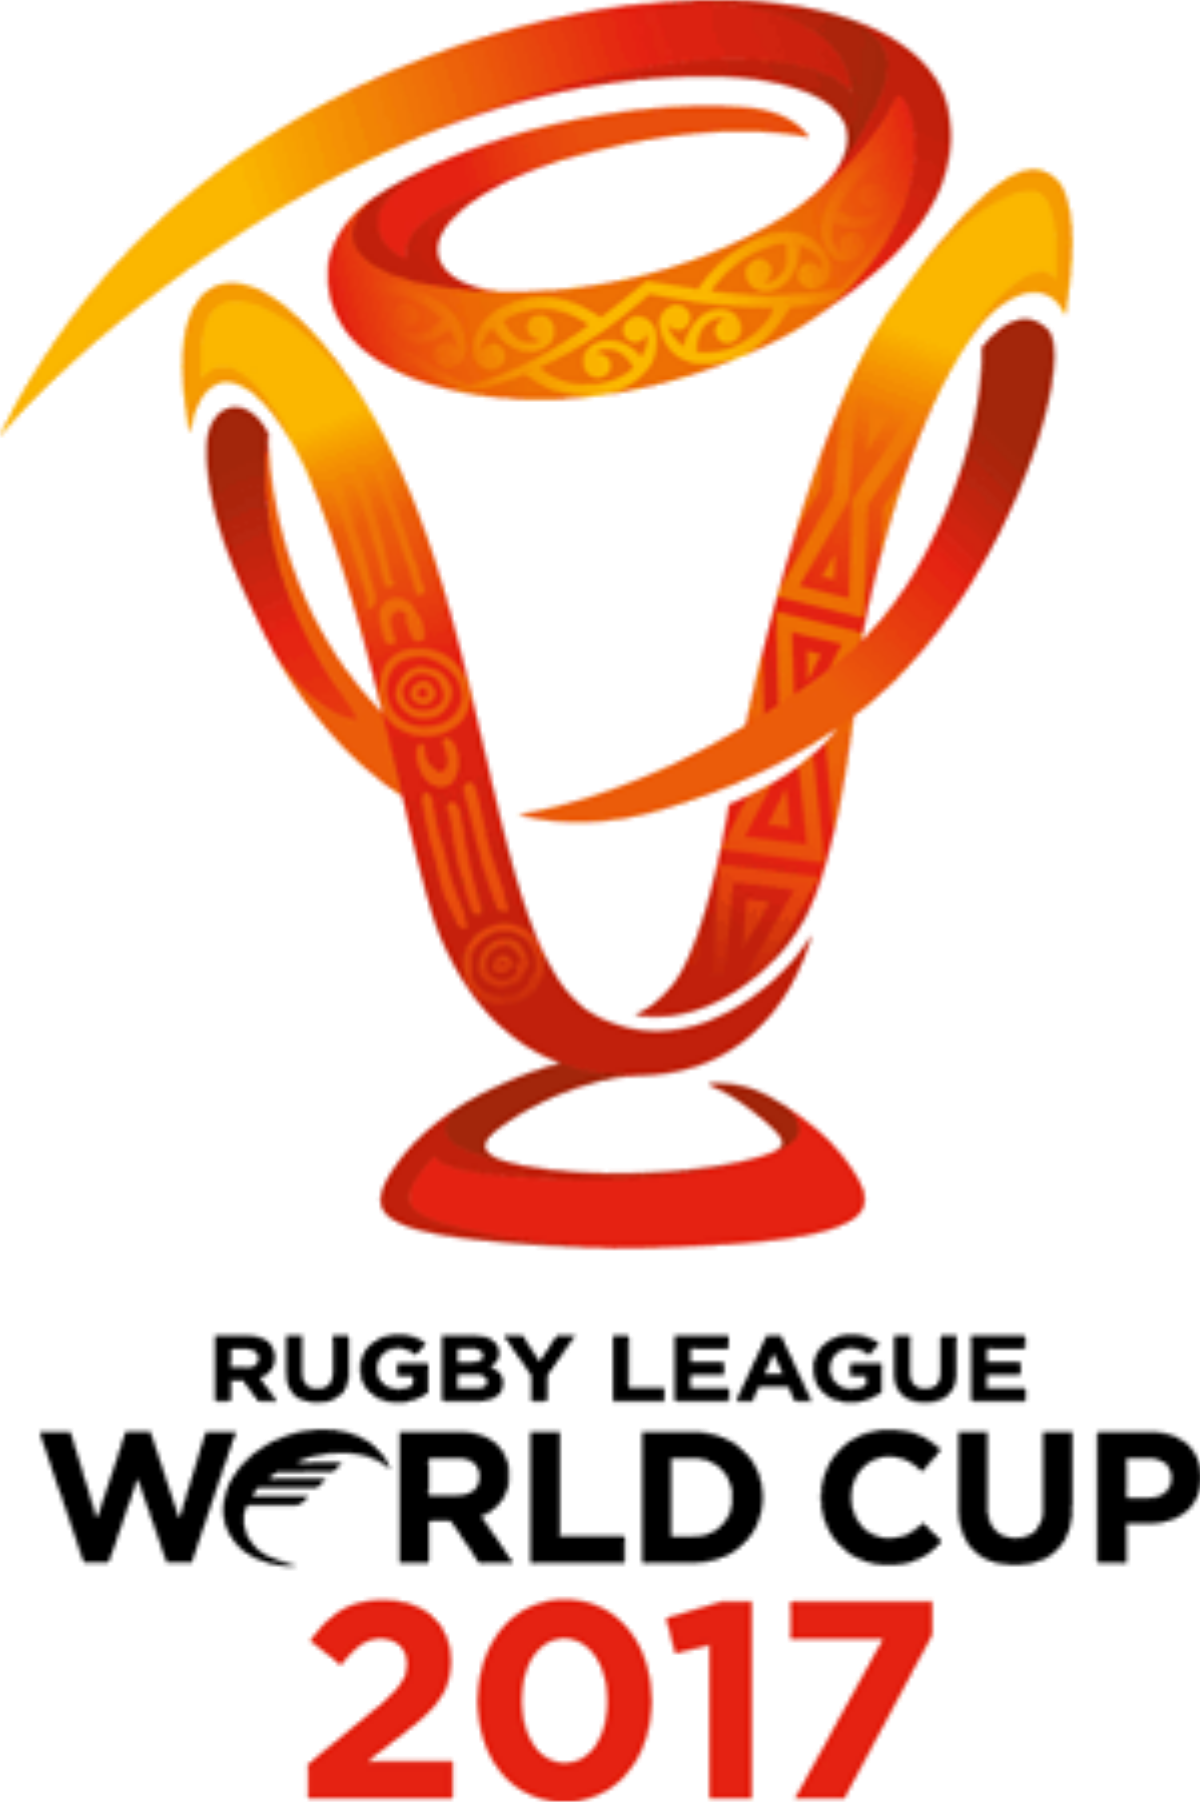 rugby league world. Conclusion clipart qualification